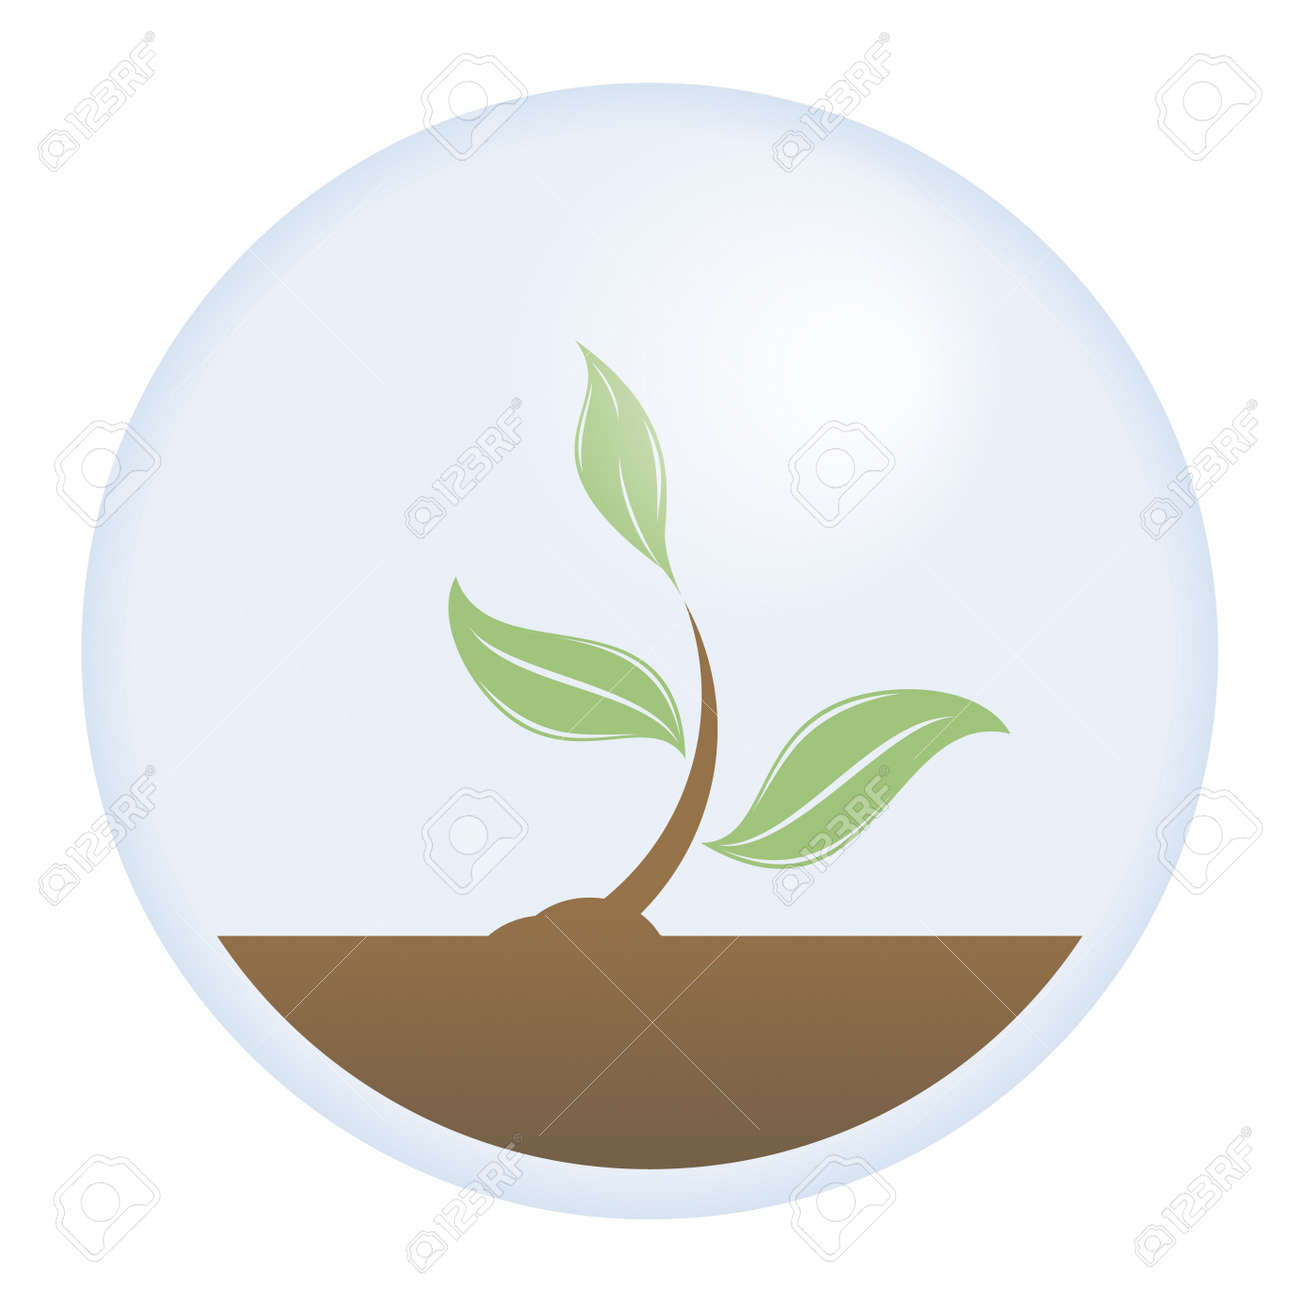 Vector illustration of a protected young tree. The need to save our planet and the important roll of trees on it. - 2885687